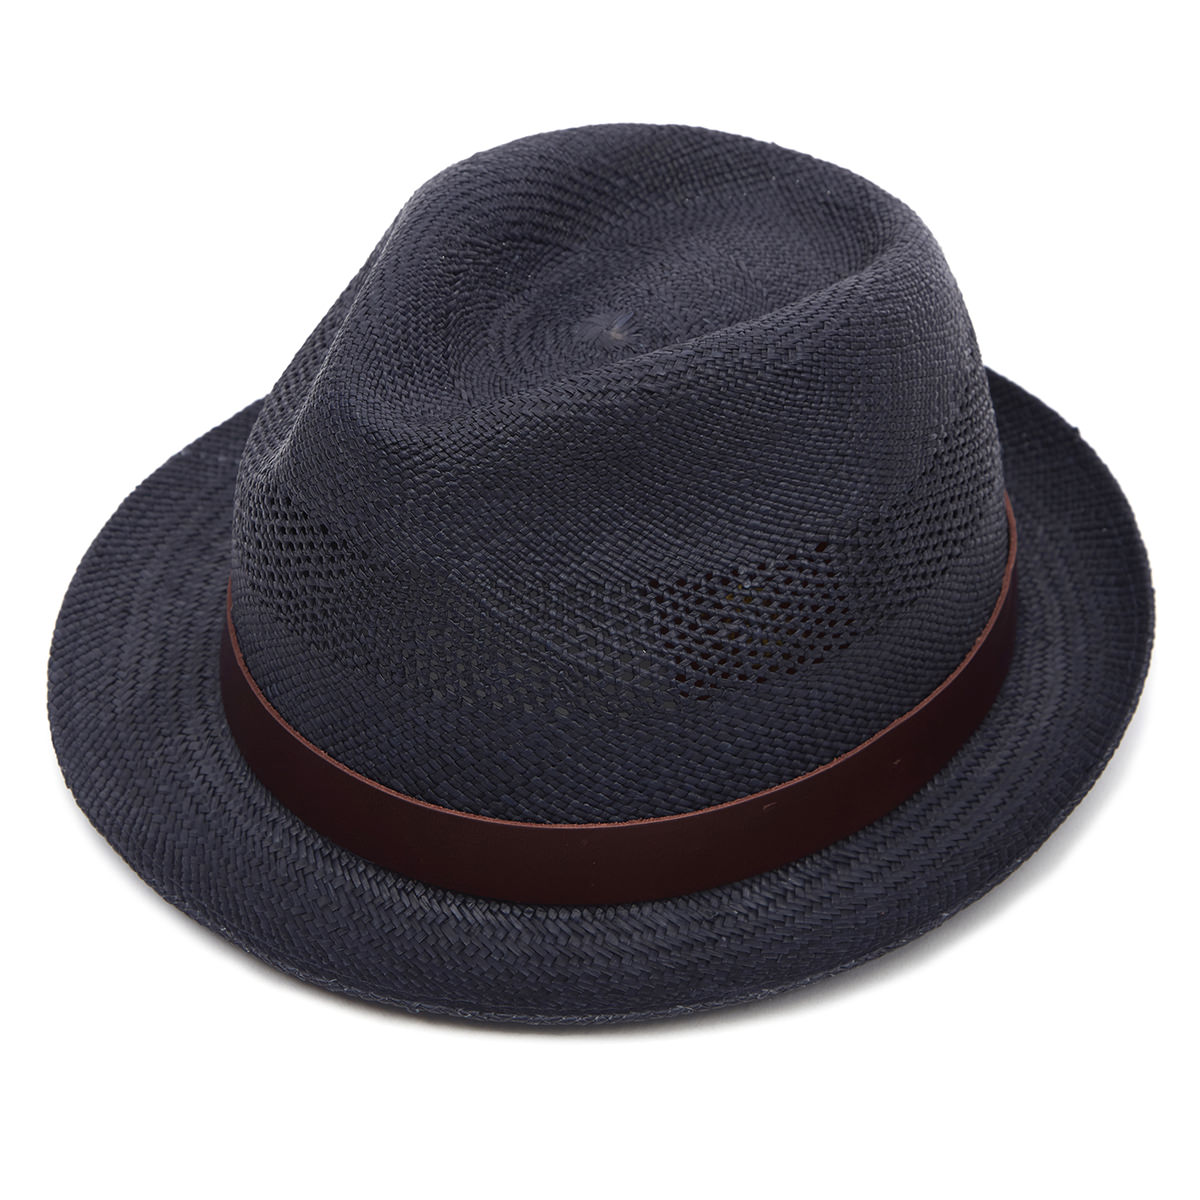 Carnaby Trilby Panama Hat - Navy Perforated 61